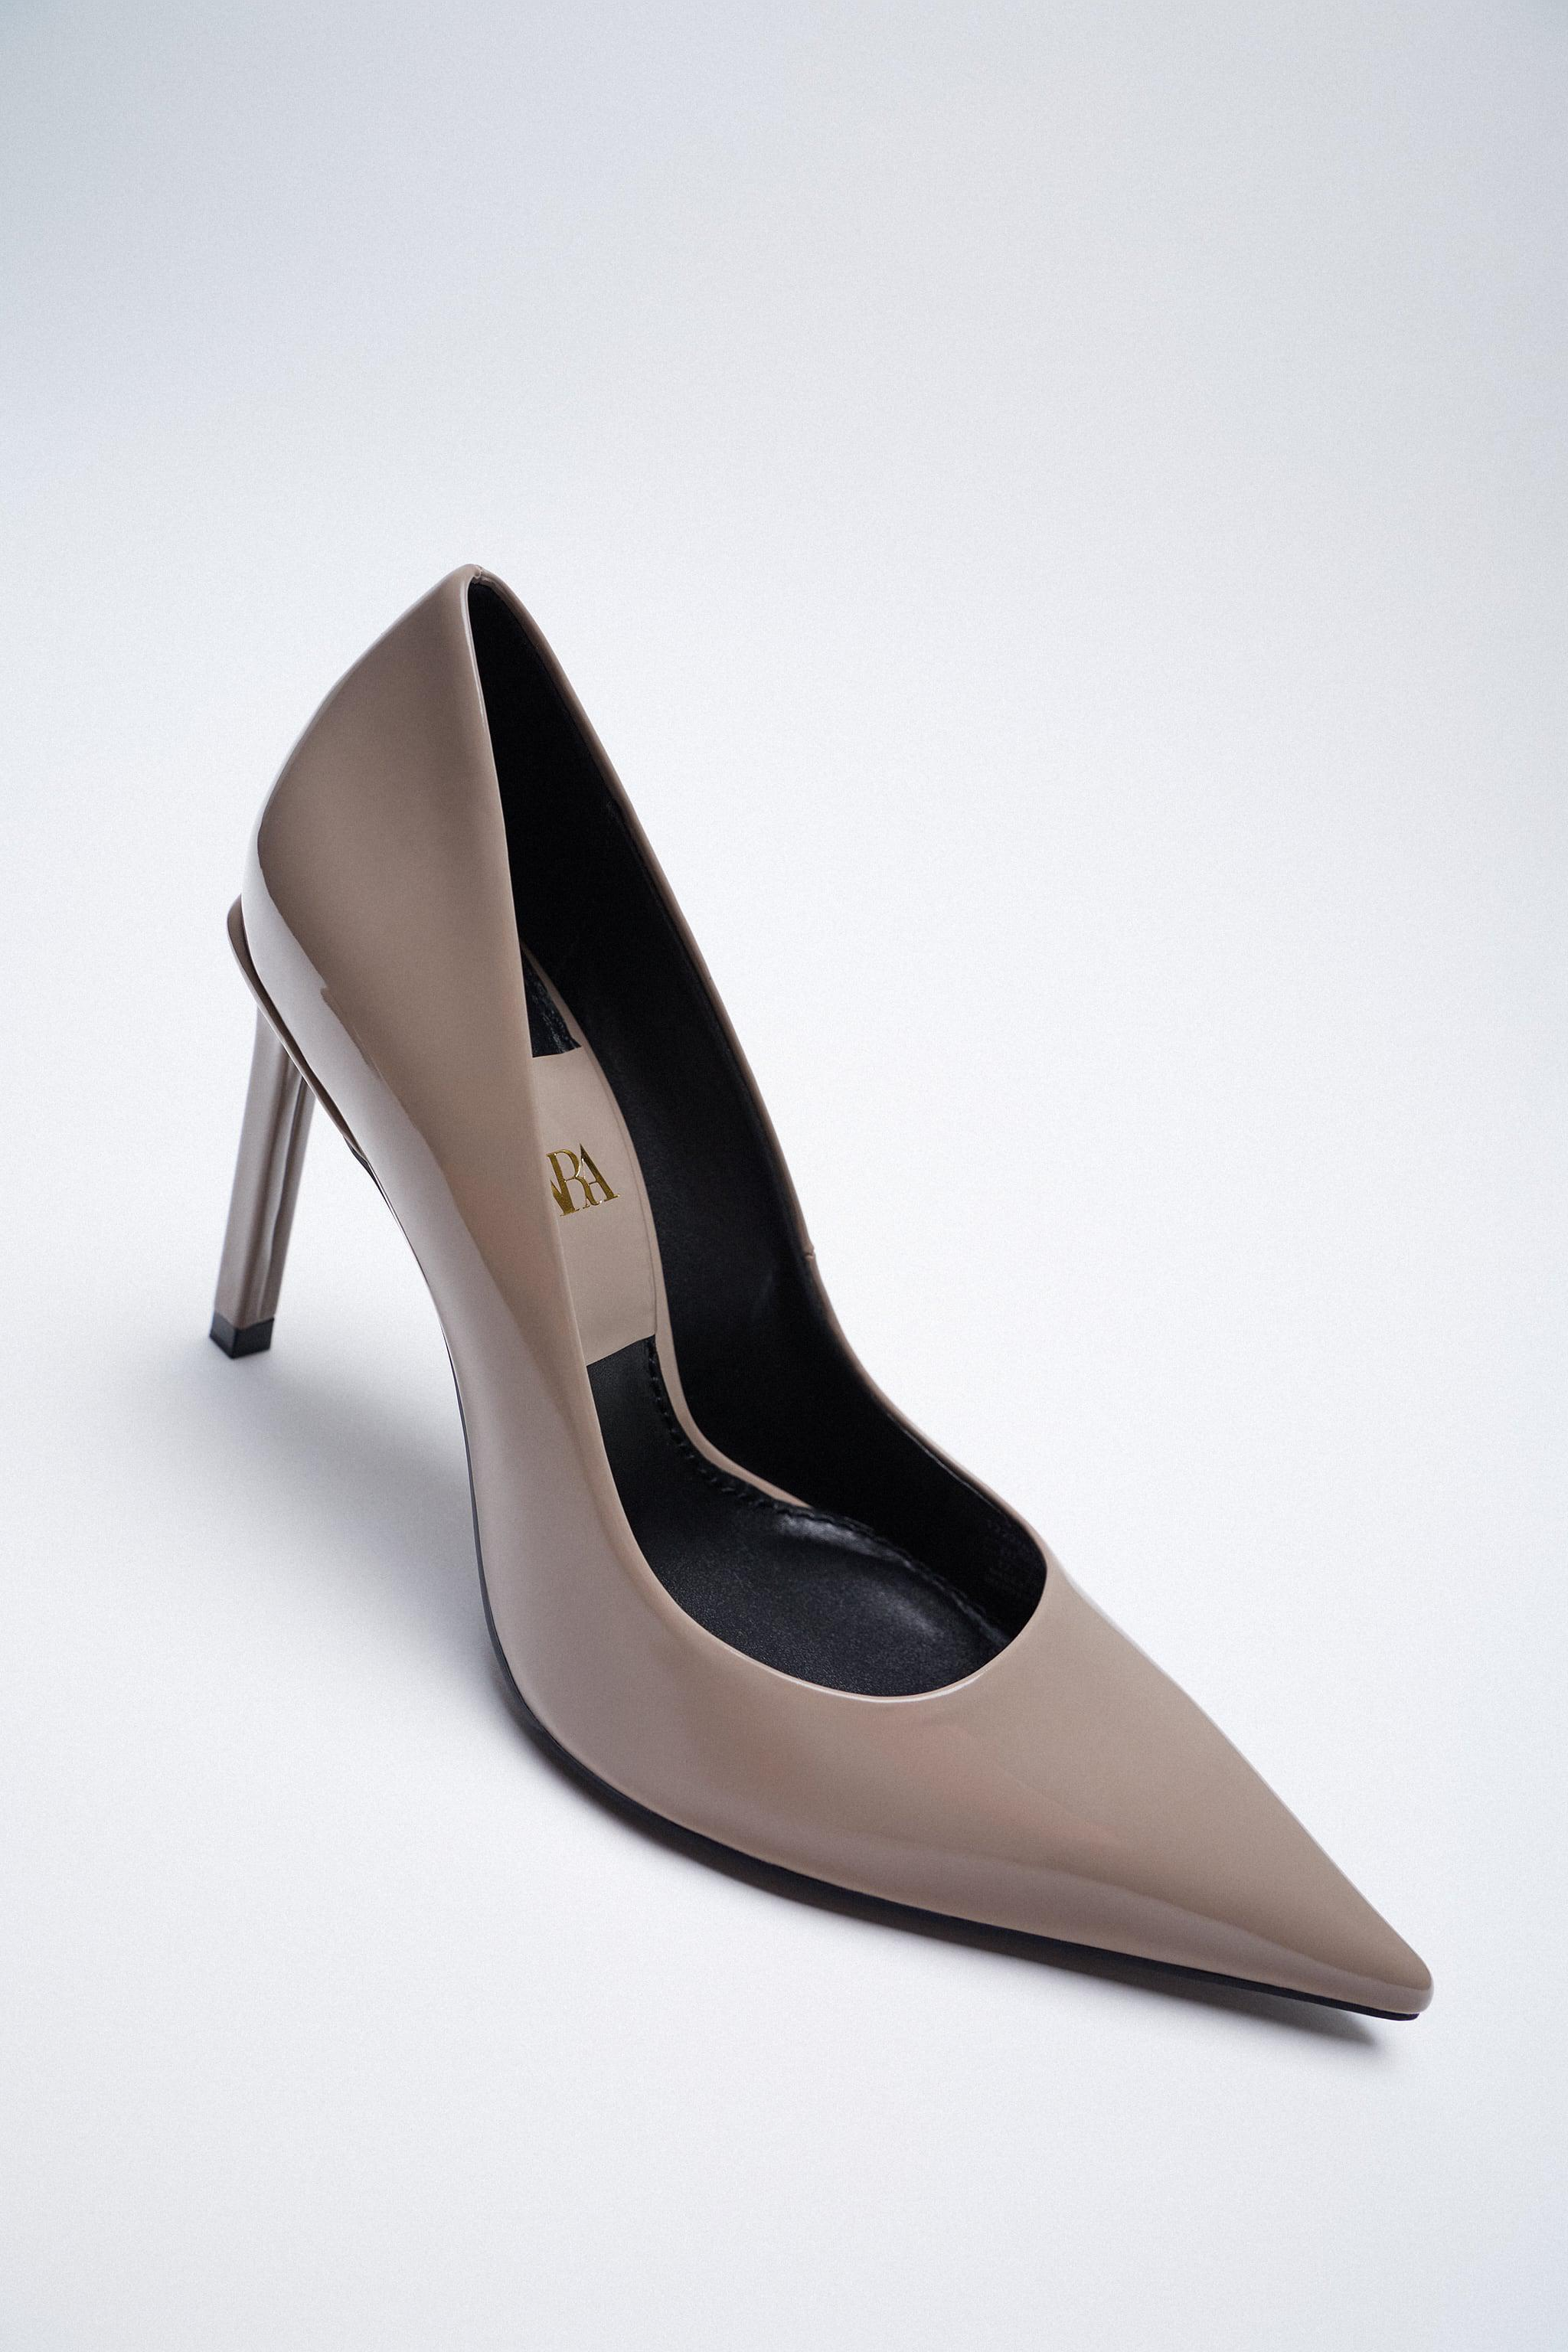 PATENT FINISH POINTED TOE HEELS 4